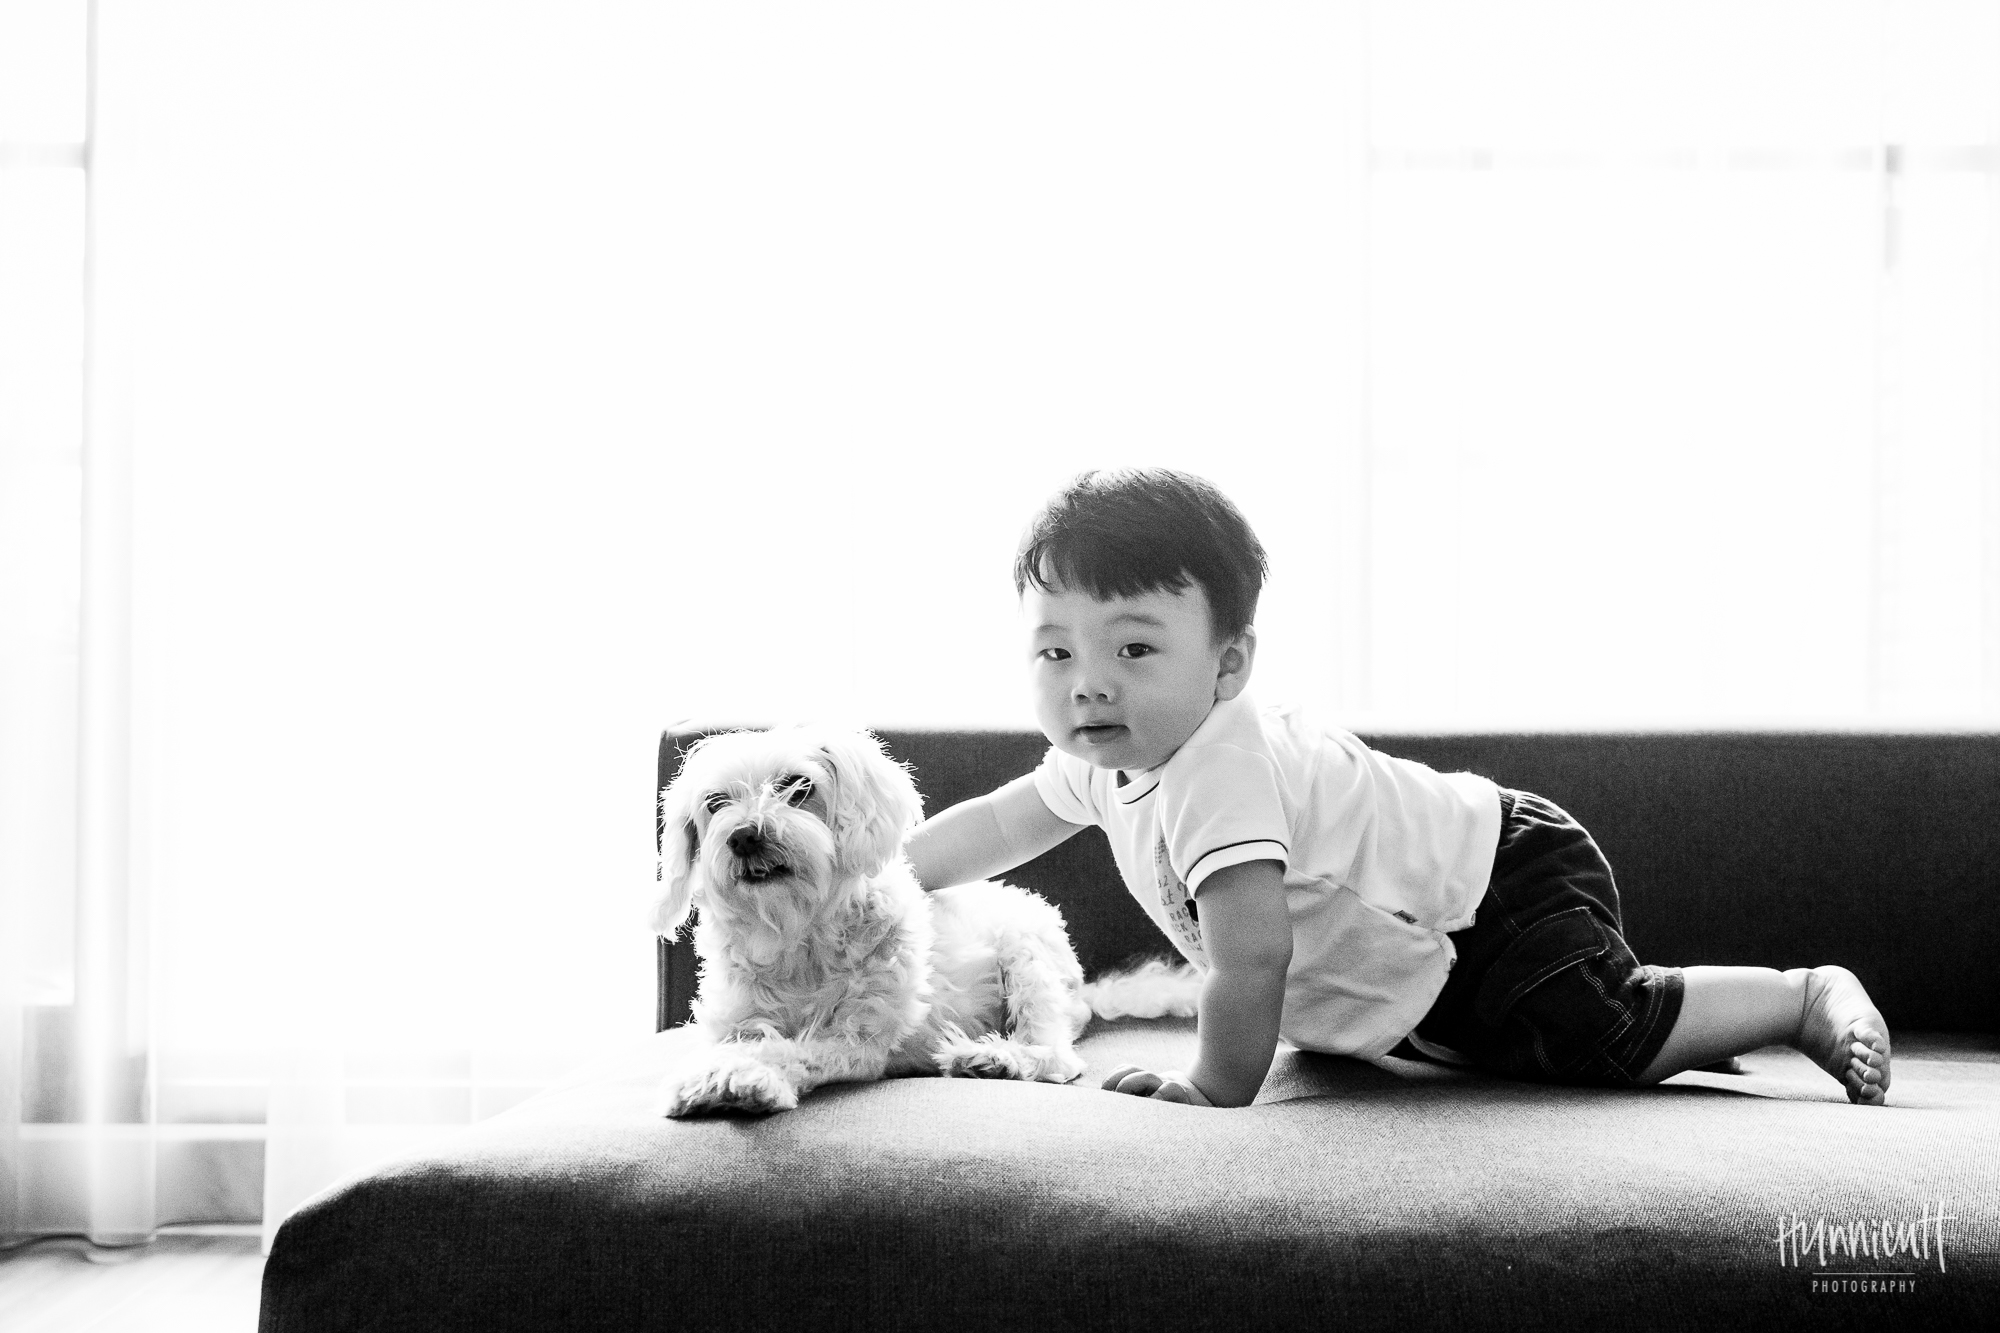 Indoor-Natural-Light-Family-HunnicuttPhotography-RebeccaHunnicuttFarren-Taichung-Taiwan-8